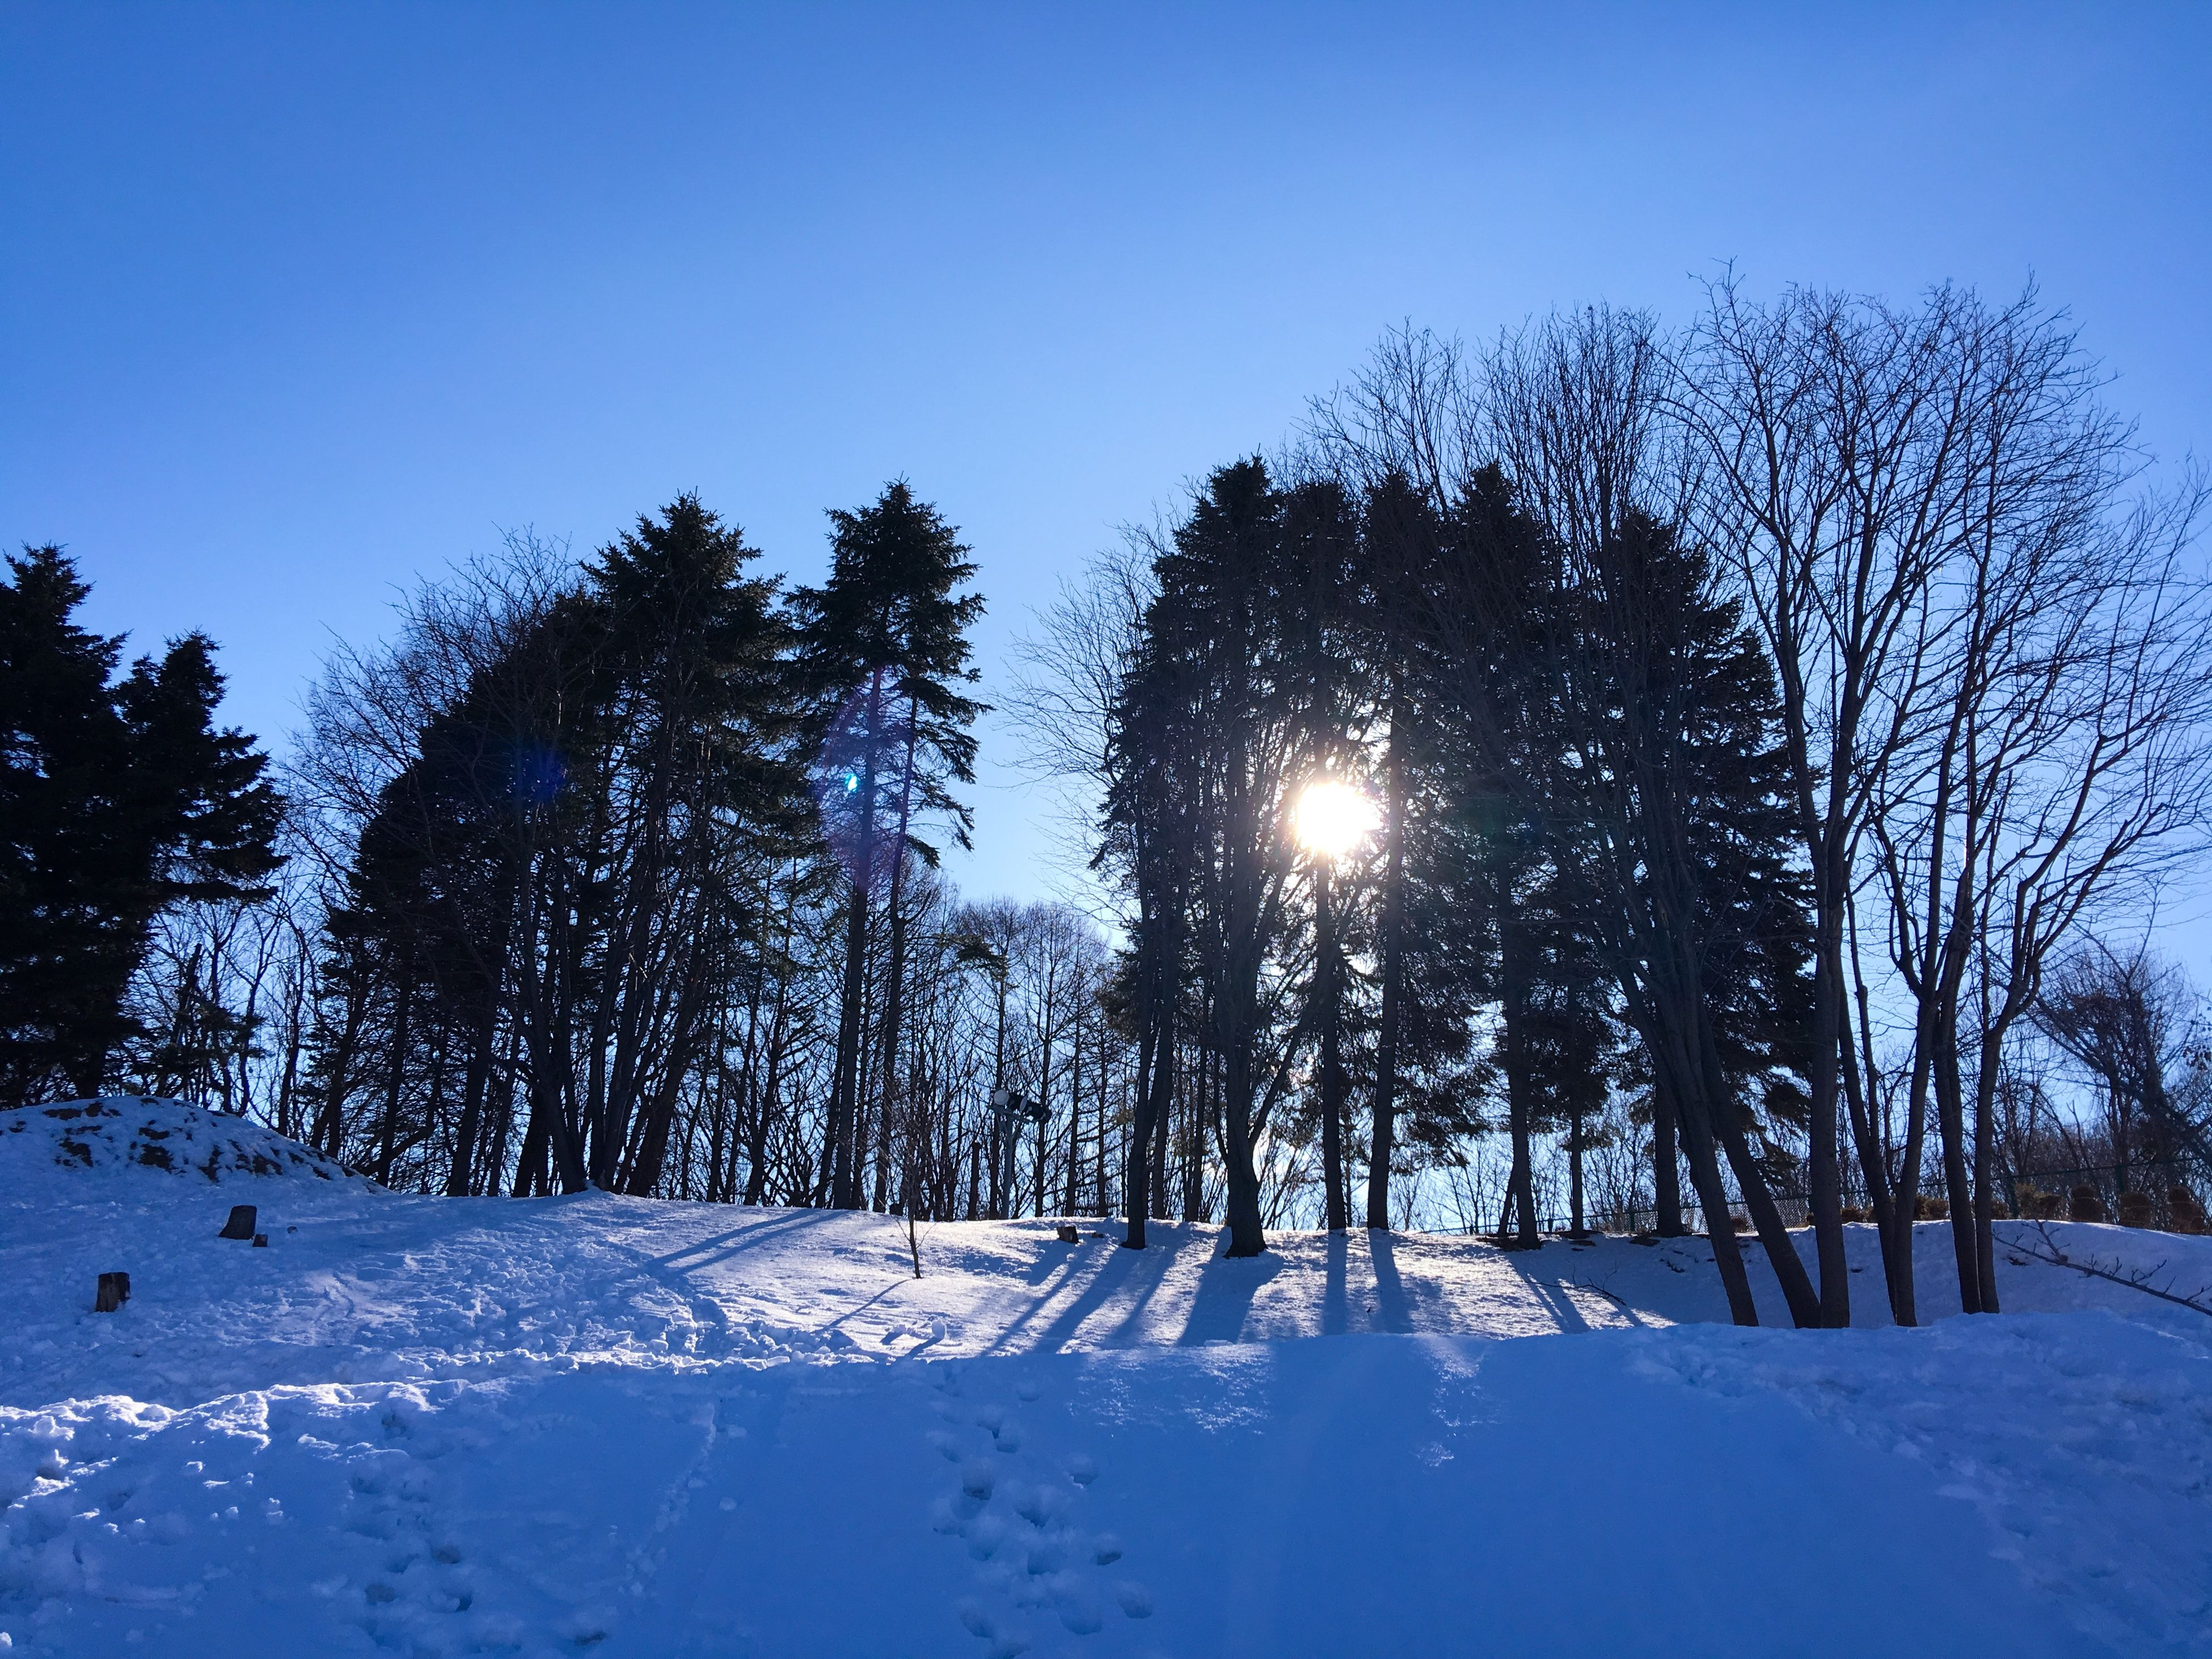 snow, winter, cold temperature, clear sky, season, tree, tranquility, weather, tranquil scene, nature, frozen, beauty in nature, field, covering, bare tree, scenics, landscape, sun, blue, sunlight